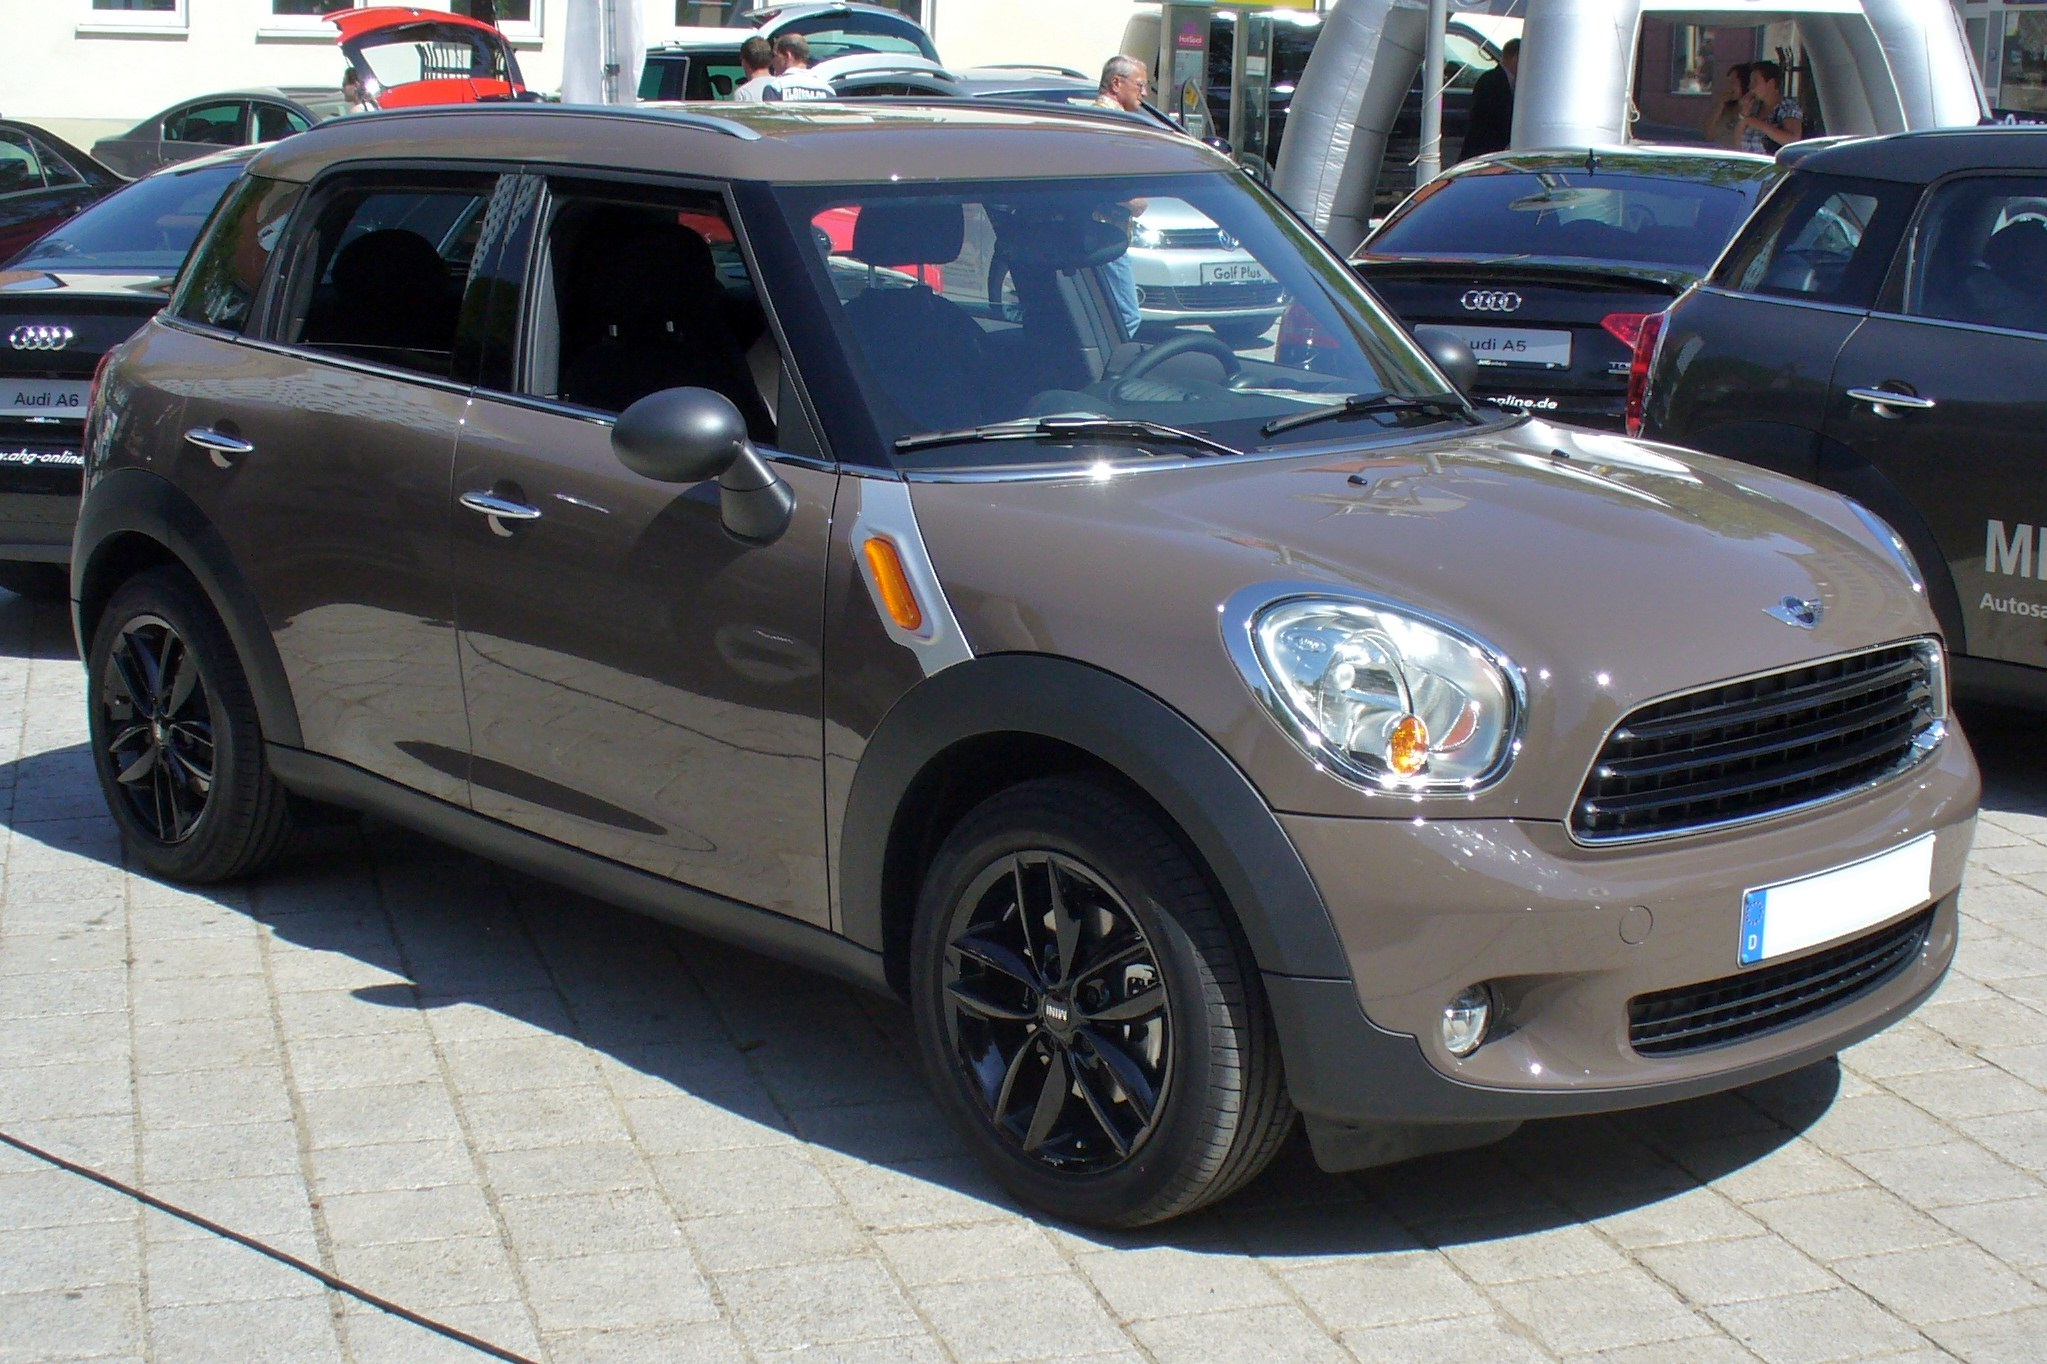 File:Mini One Countryman Light Coffee.JPG - Wikimedia Commons